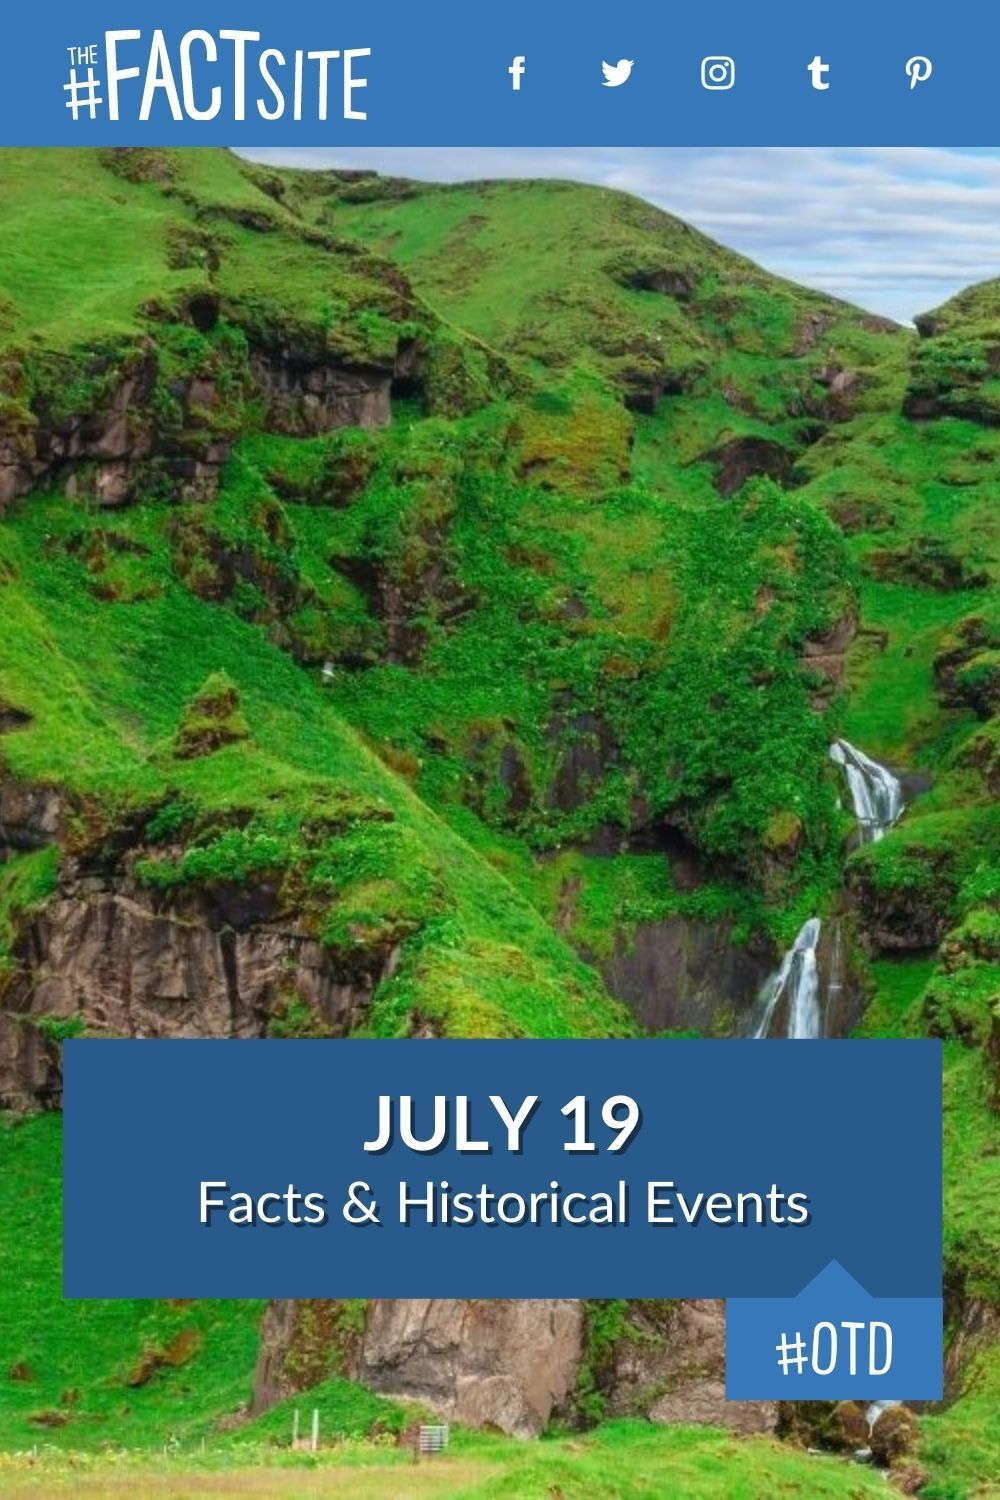 Facts & Historic Events That Happened on July 19